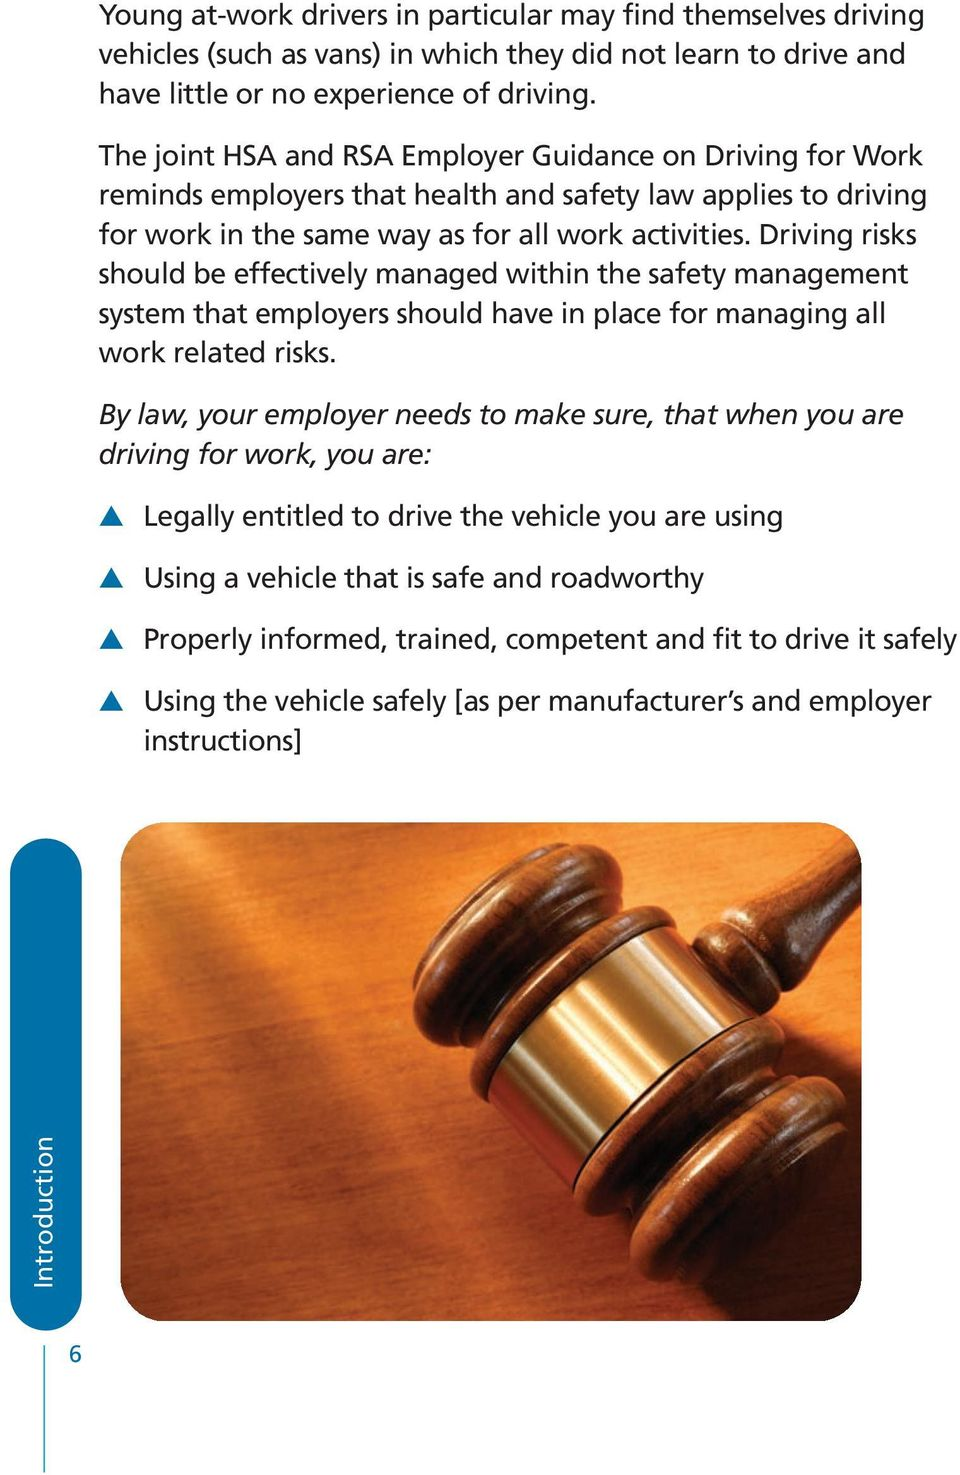 Driving risks should be effectively managed within the safety management system that employers should have in place for managing all work related risks.